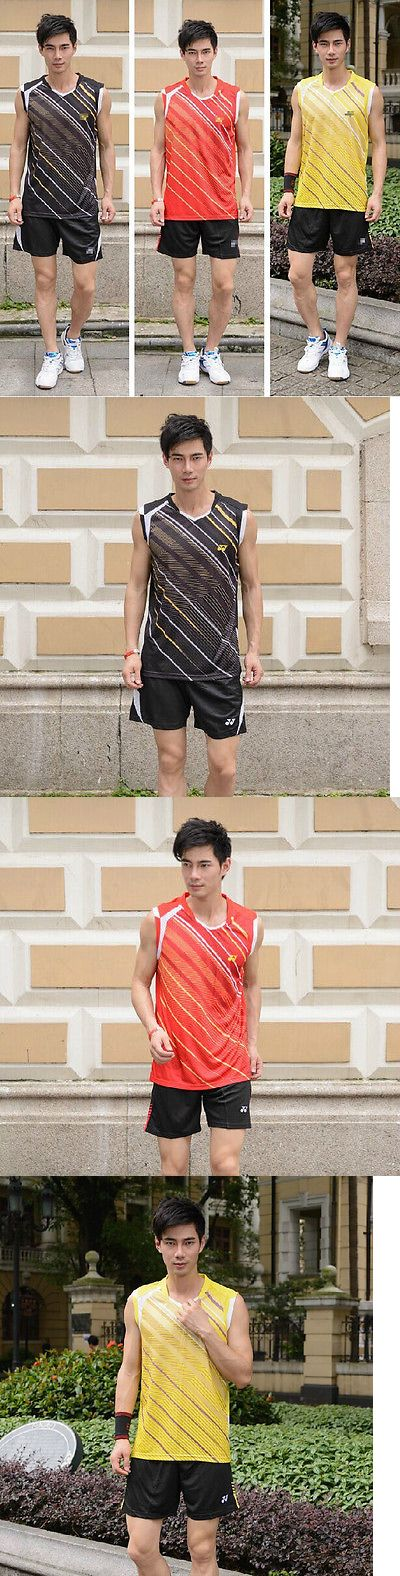 Shirts and Tops 70900: Free Shipping 2014 Mens Table Tennis Clothing/Badminton Shirt+Shorts 36103 BUY IT NOW ONLY: $33.99